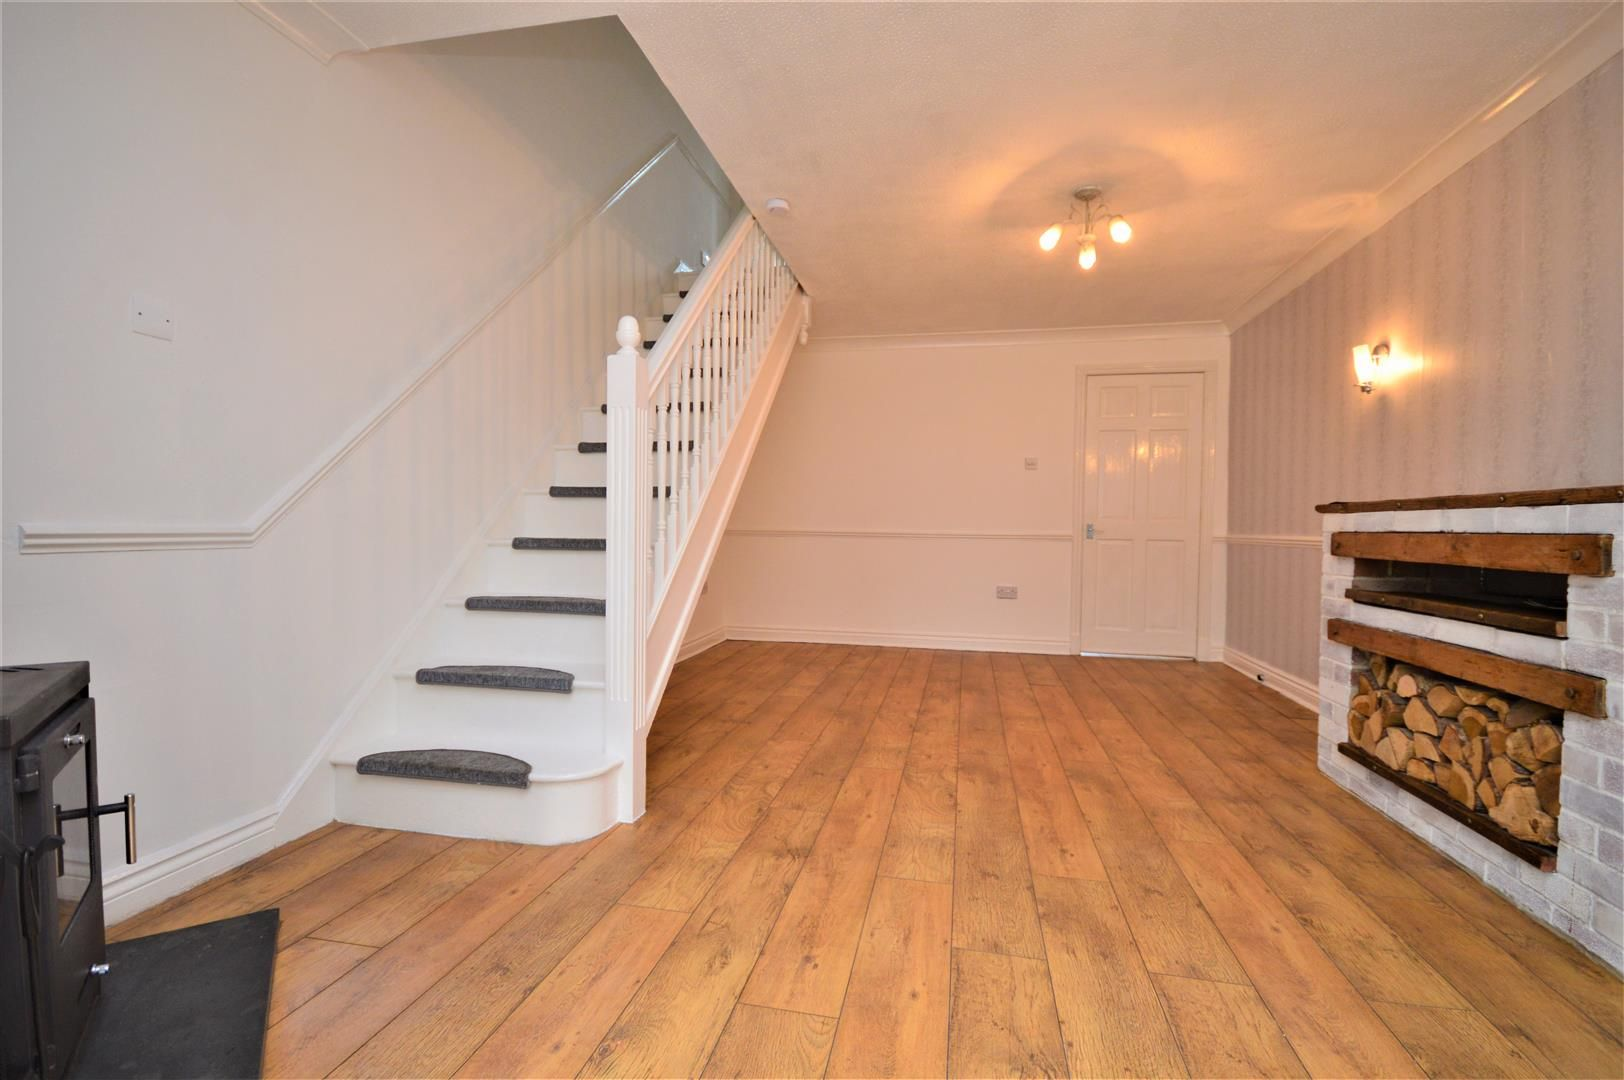 2 bed end-of-terrace for sale in Belmont 3